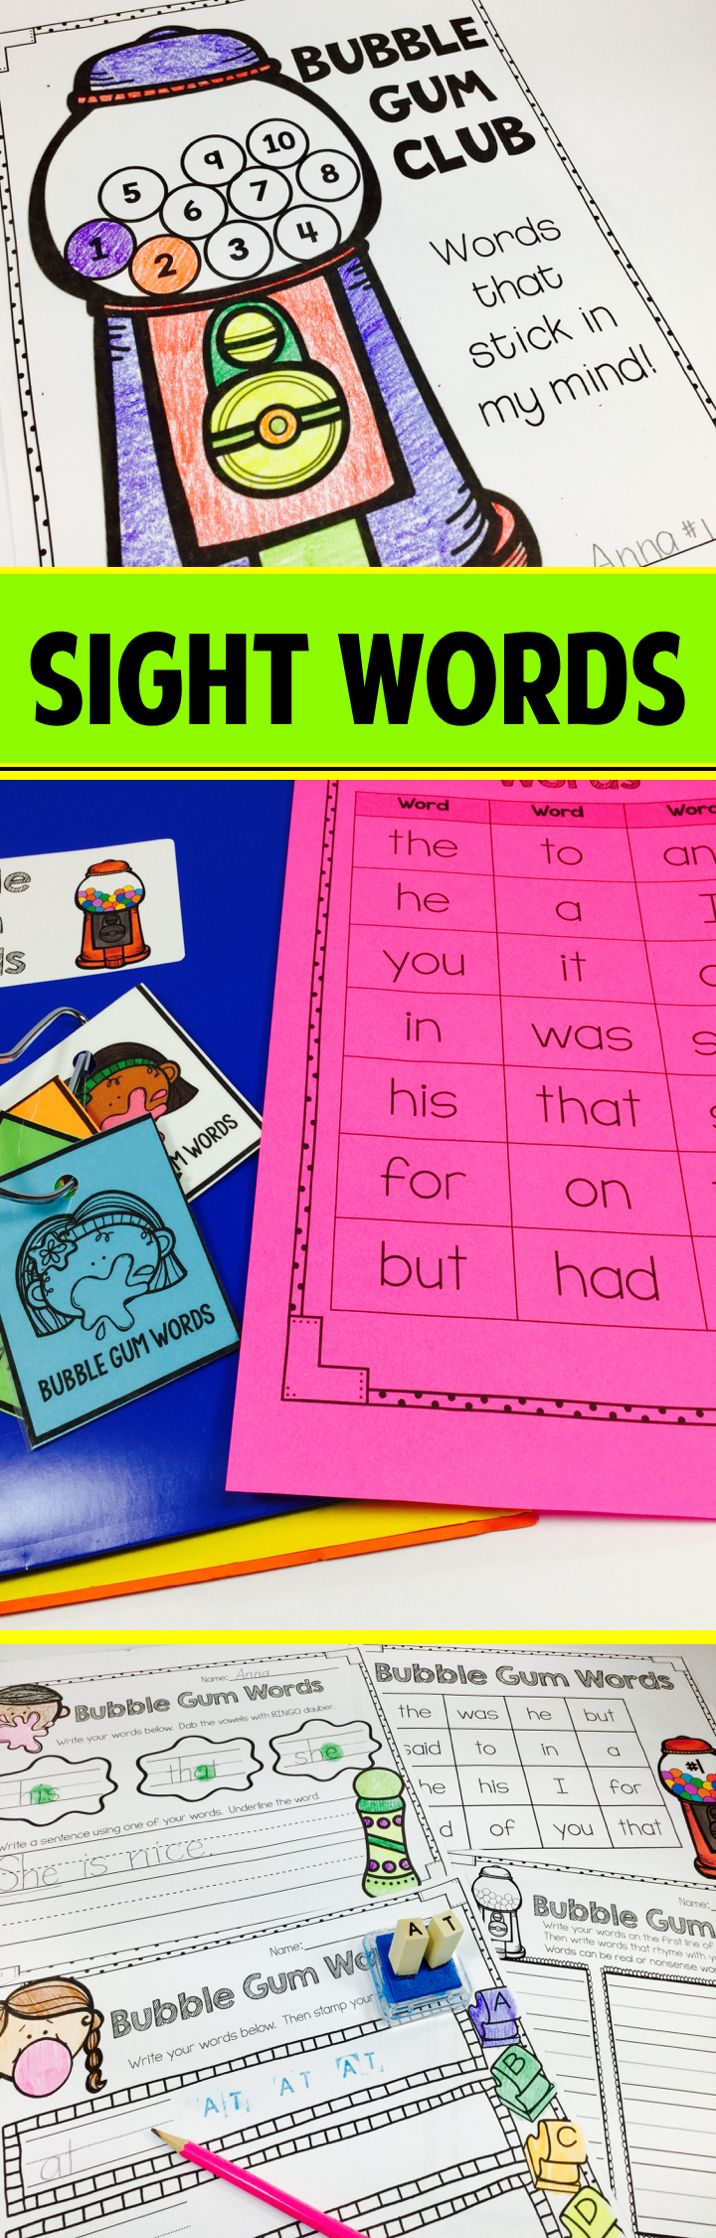 Structured sight word program - students are successful because this program is structured, students have achievable goals, and parent involvement is encouraged. paid